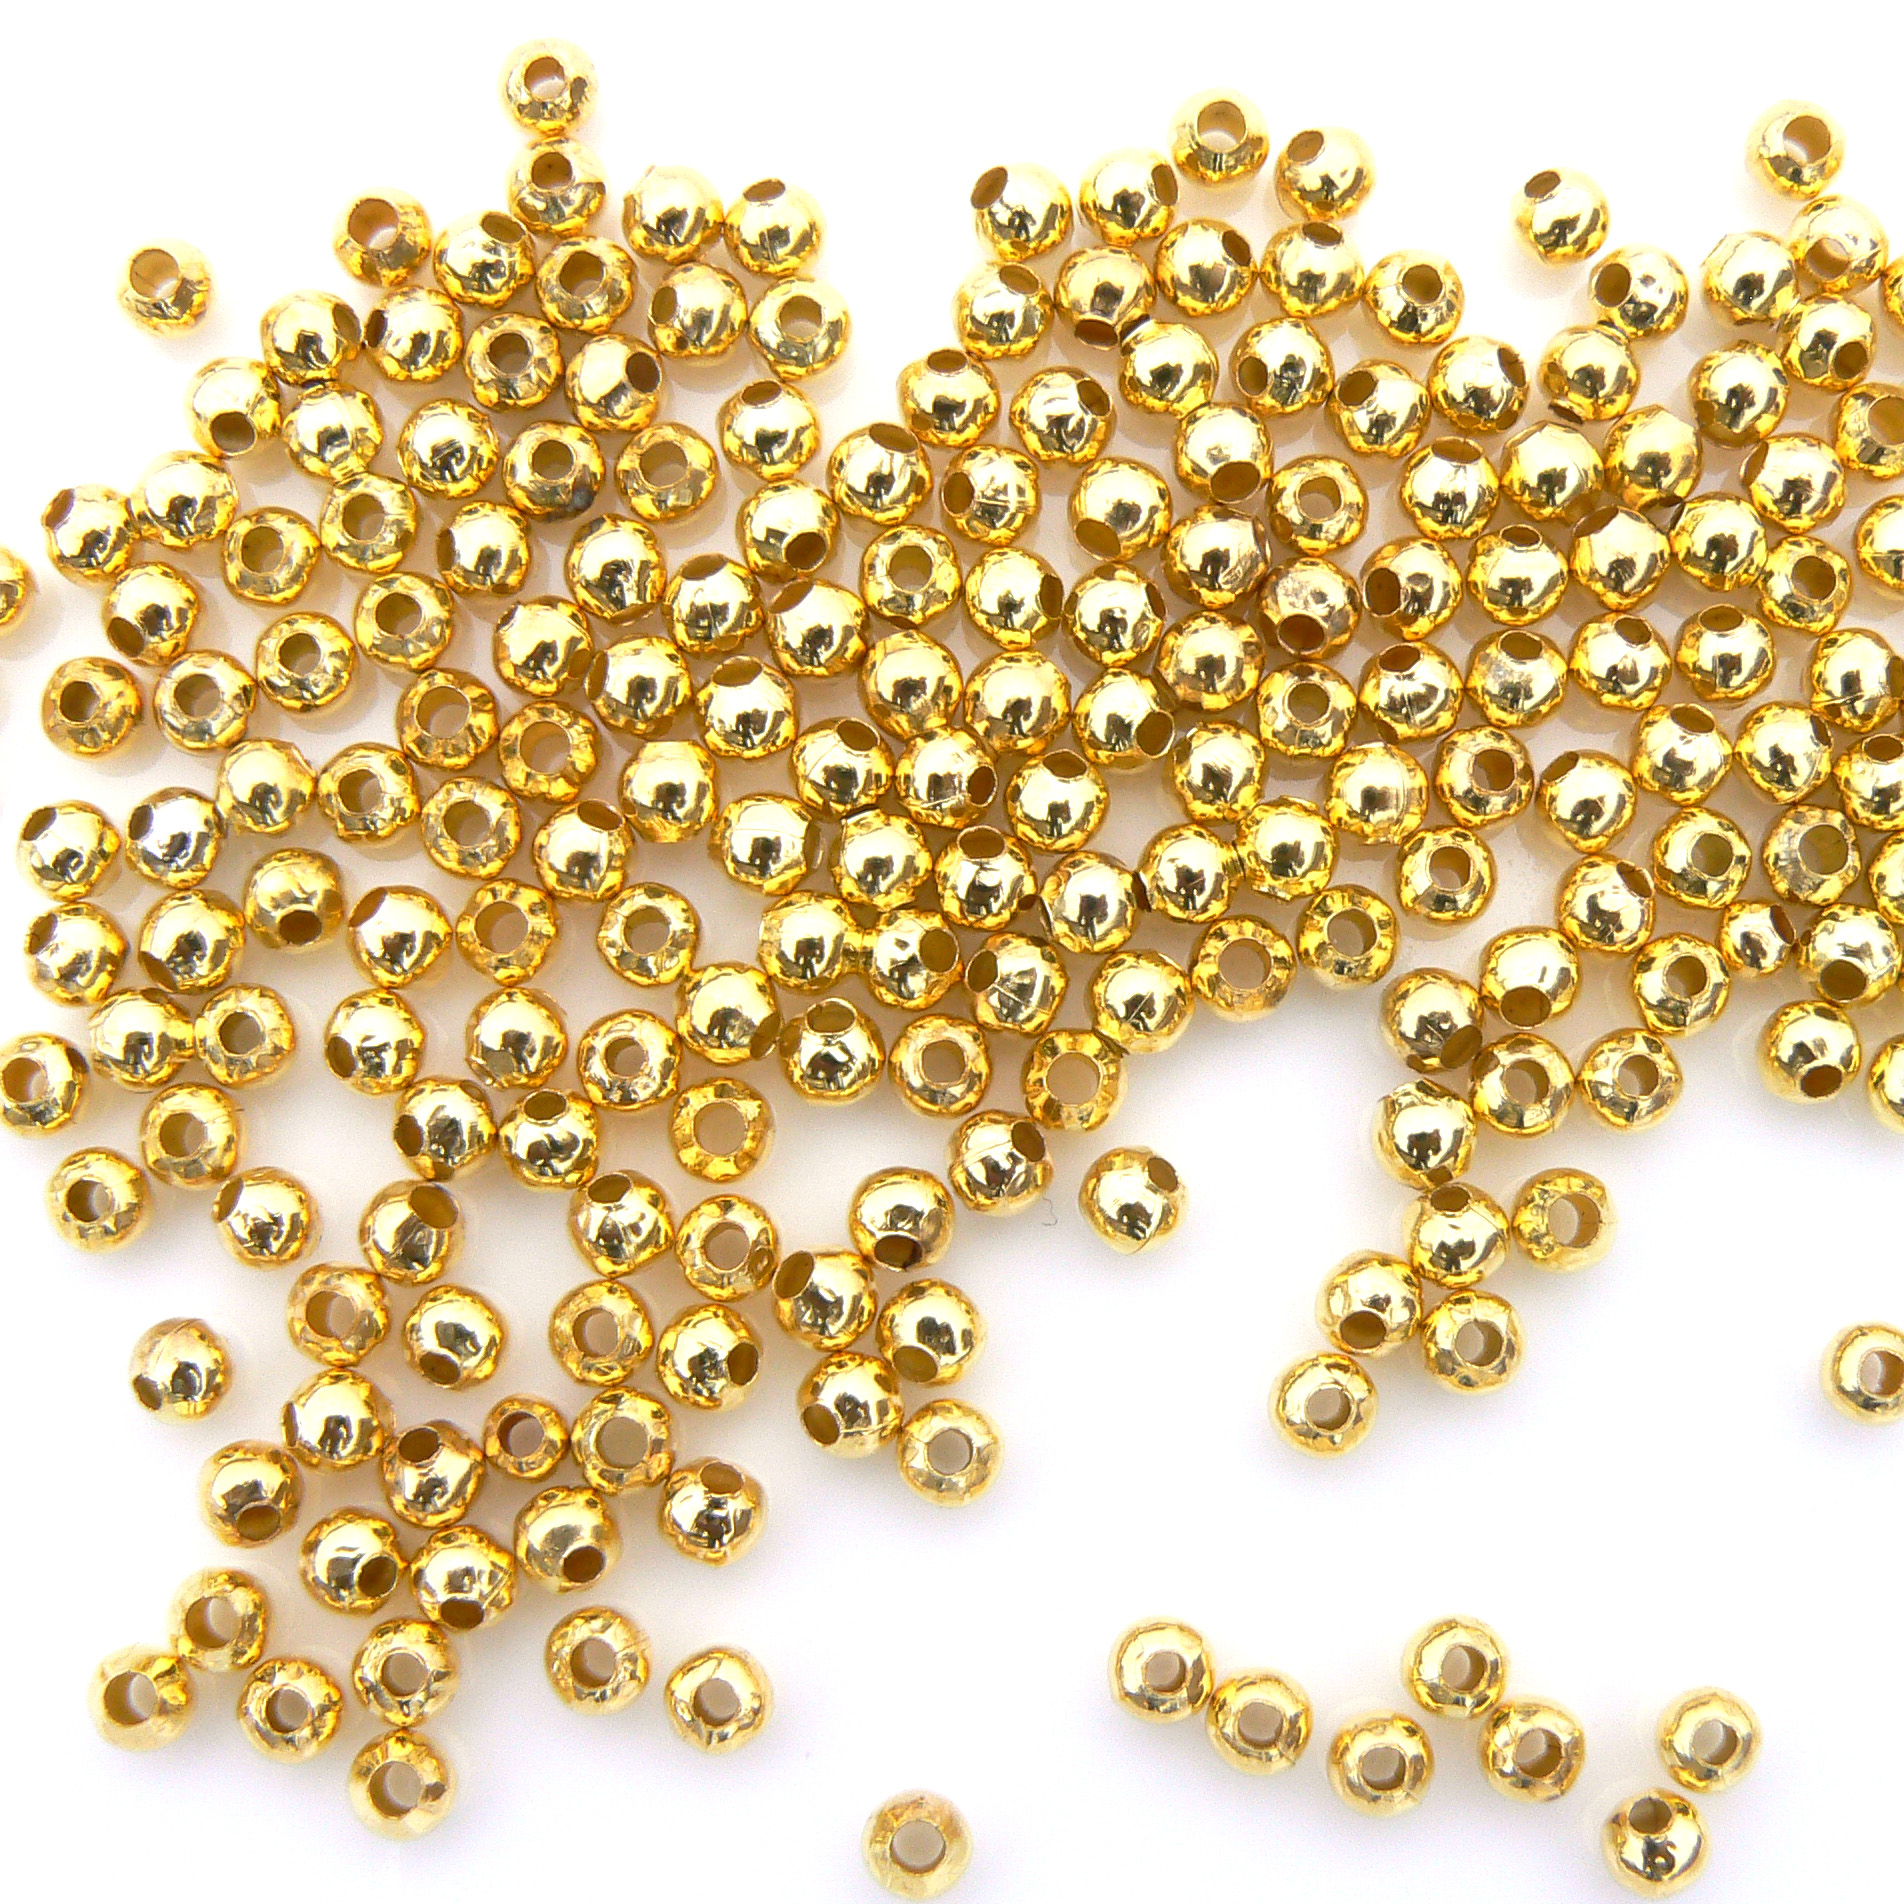 Metal Spacer Beads - Gold Plated - 200 - 4mm